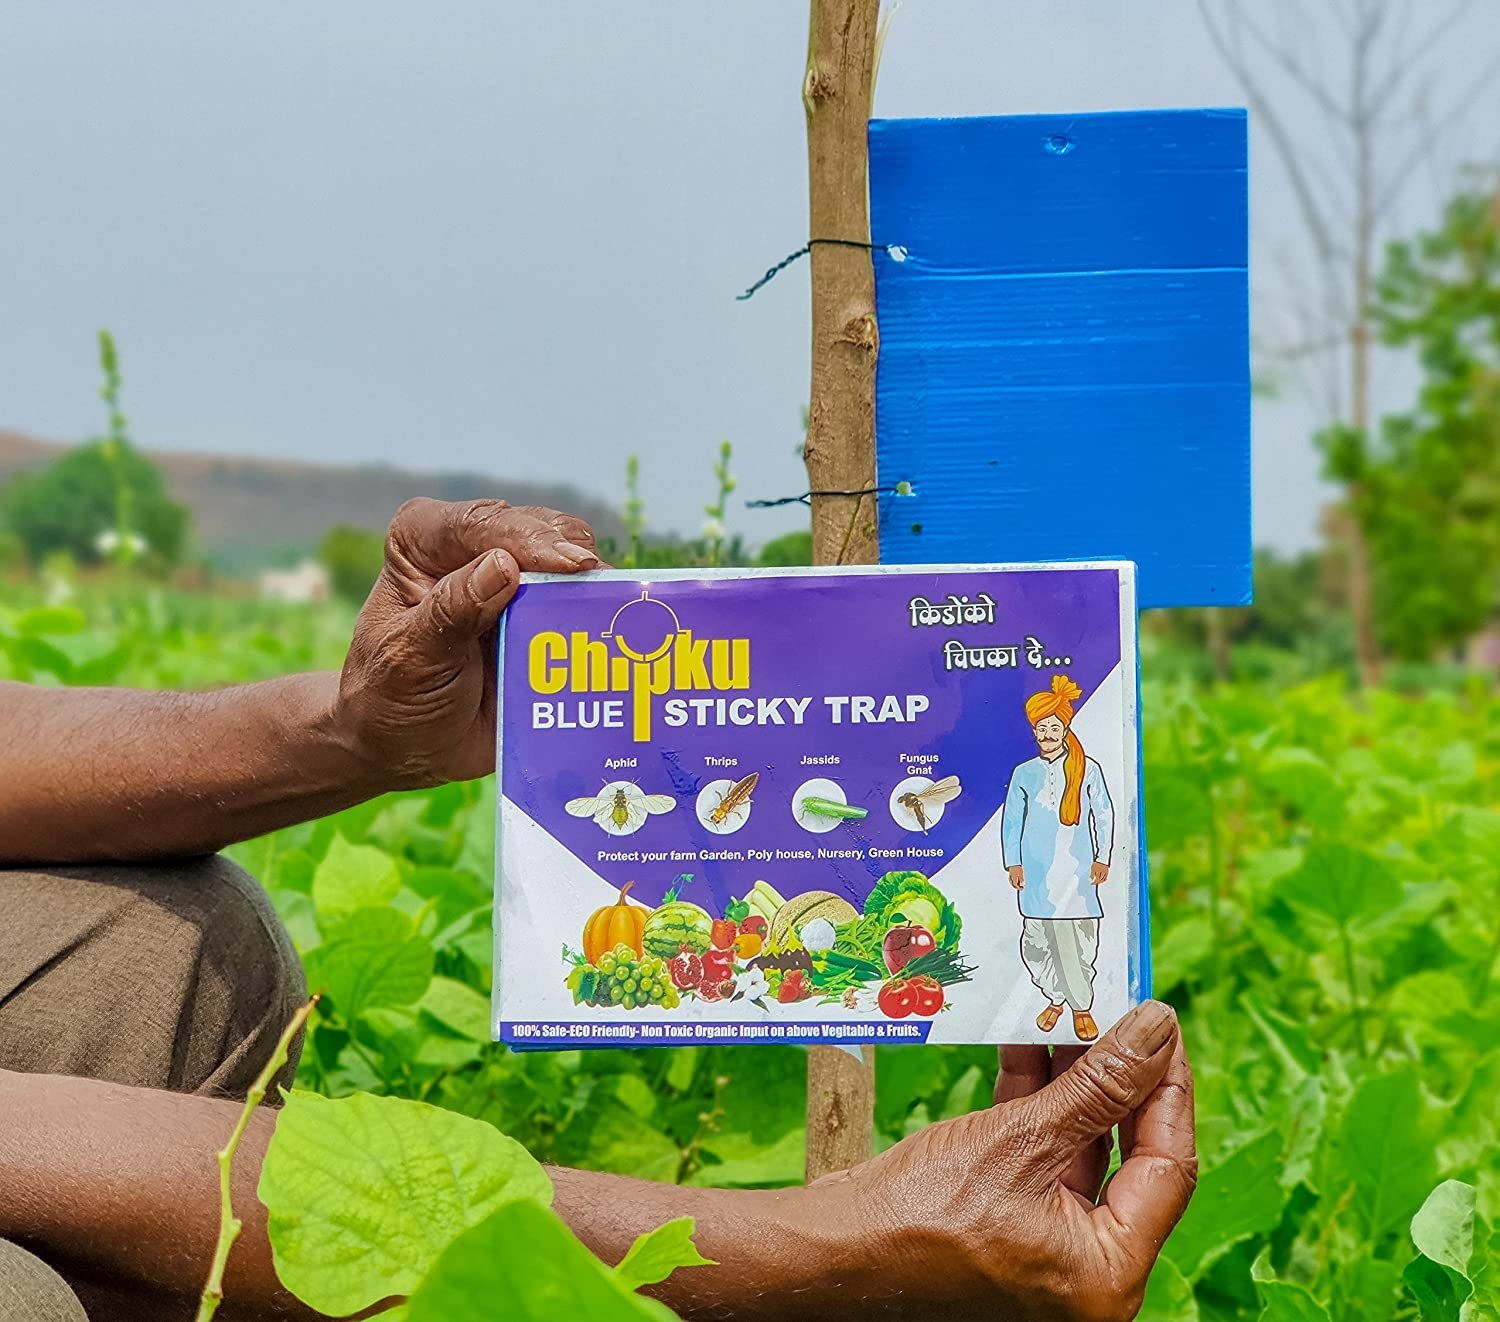 A man holding up a pack of sticky blue insect traps in a field.